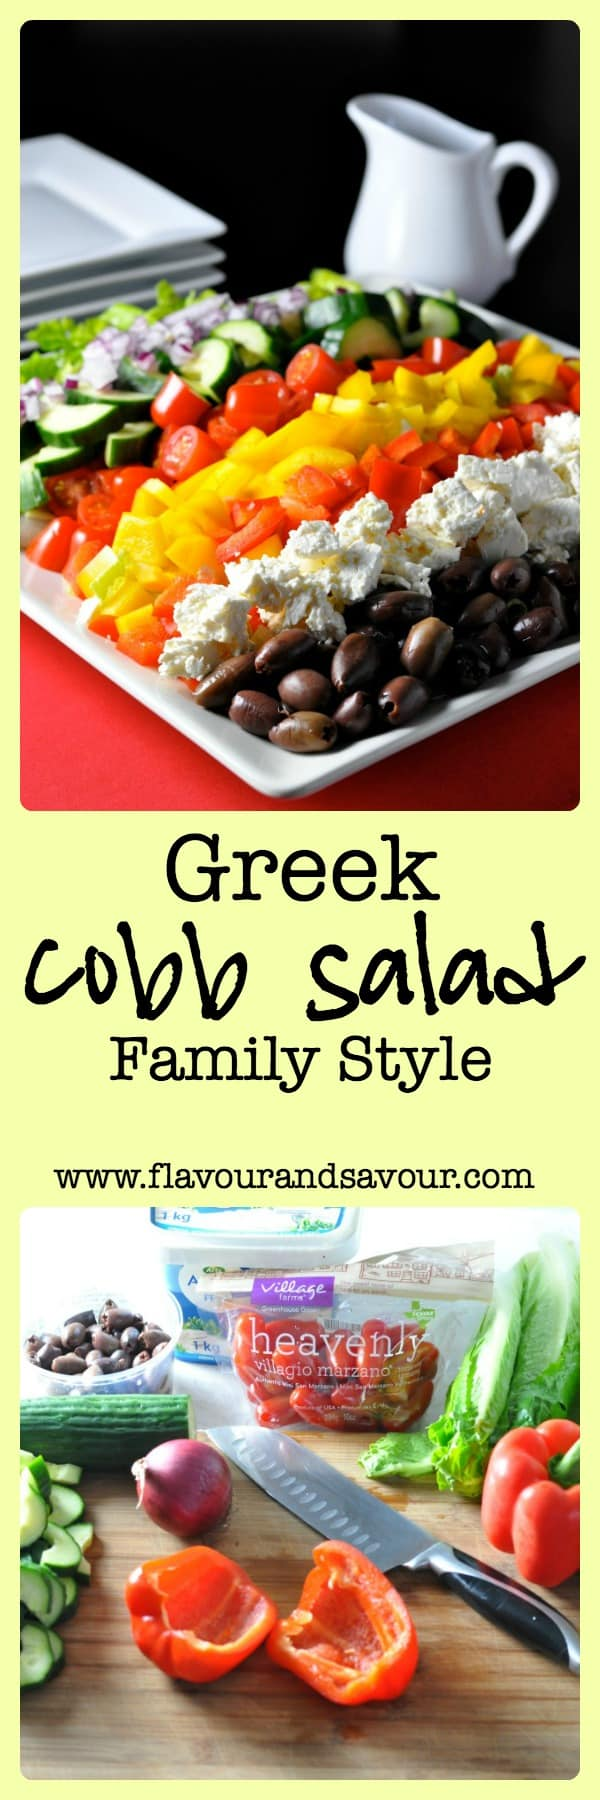 Greek Cobb Salad--Family Style. Provide choices and let everyone make their own. |www.flavourandsavour.com